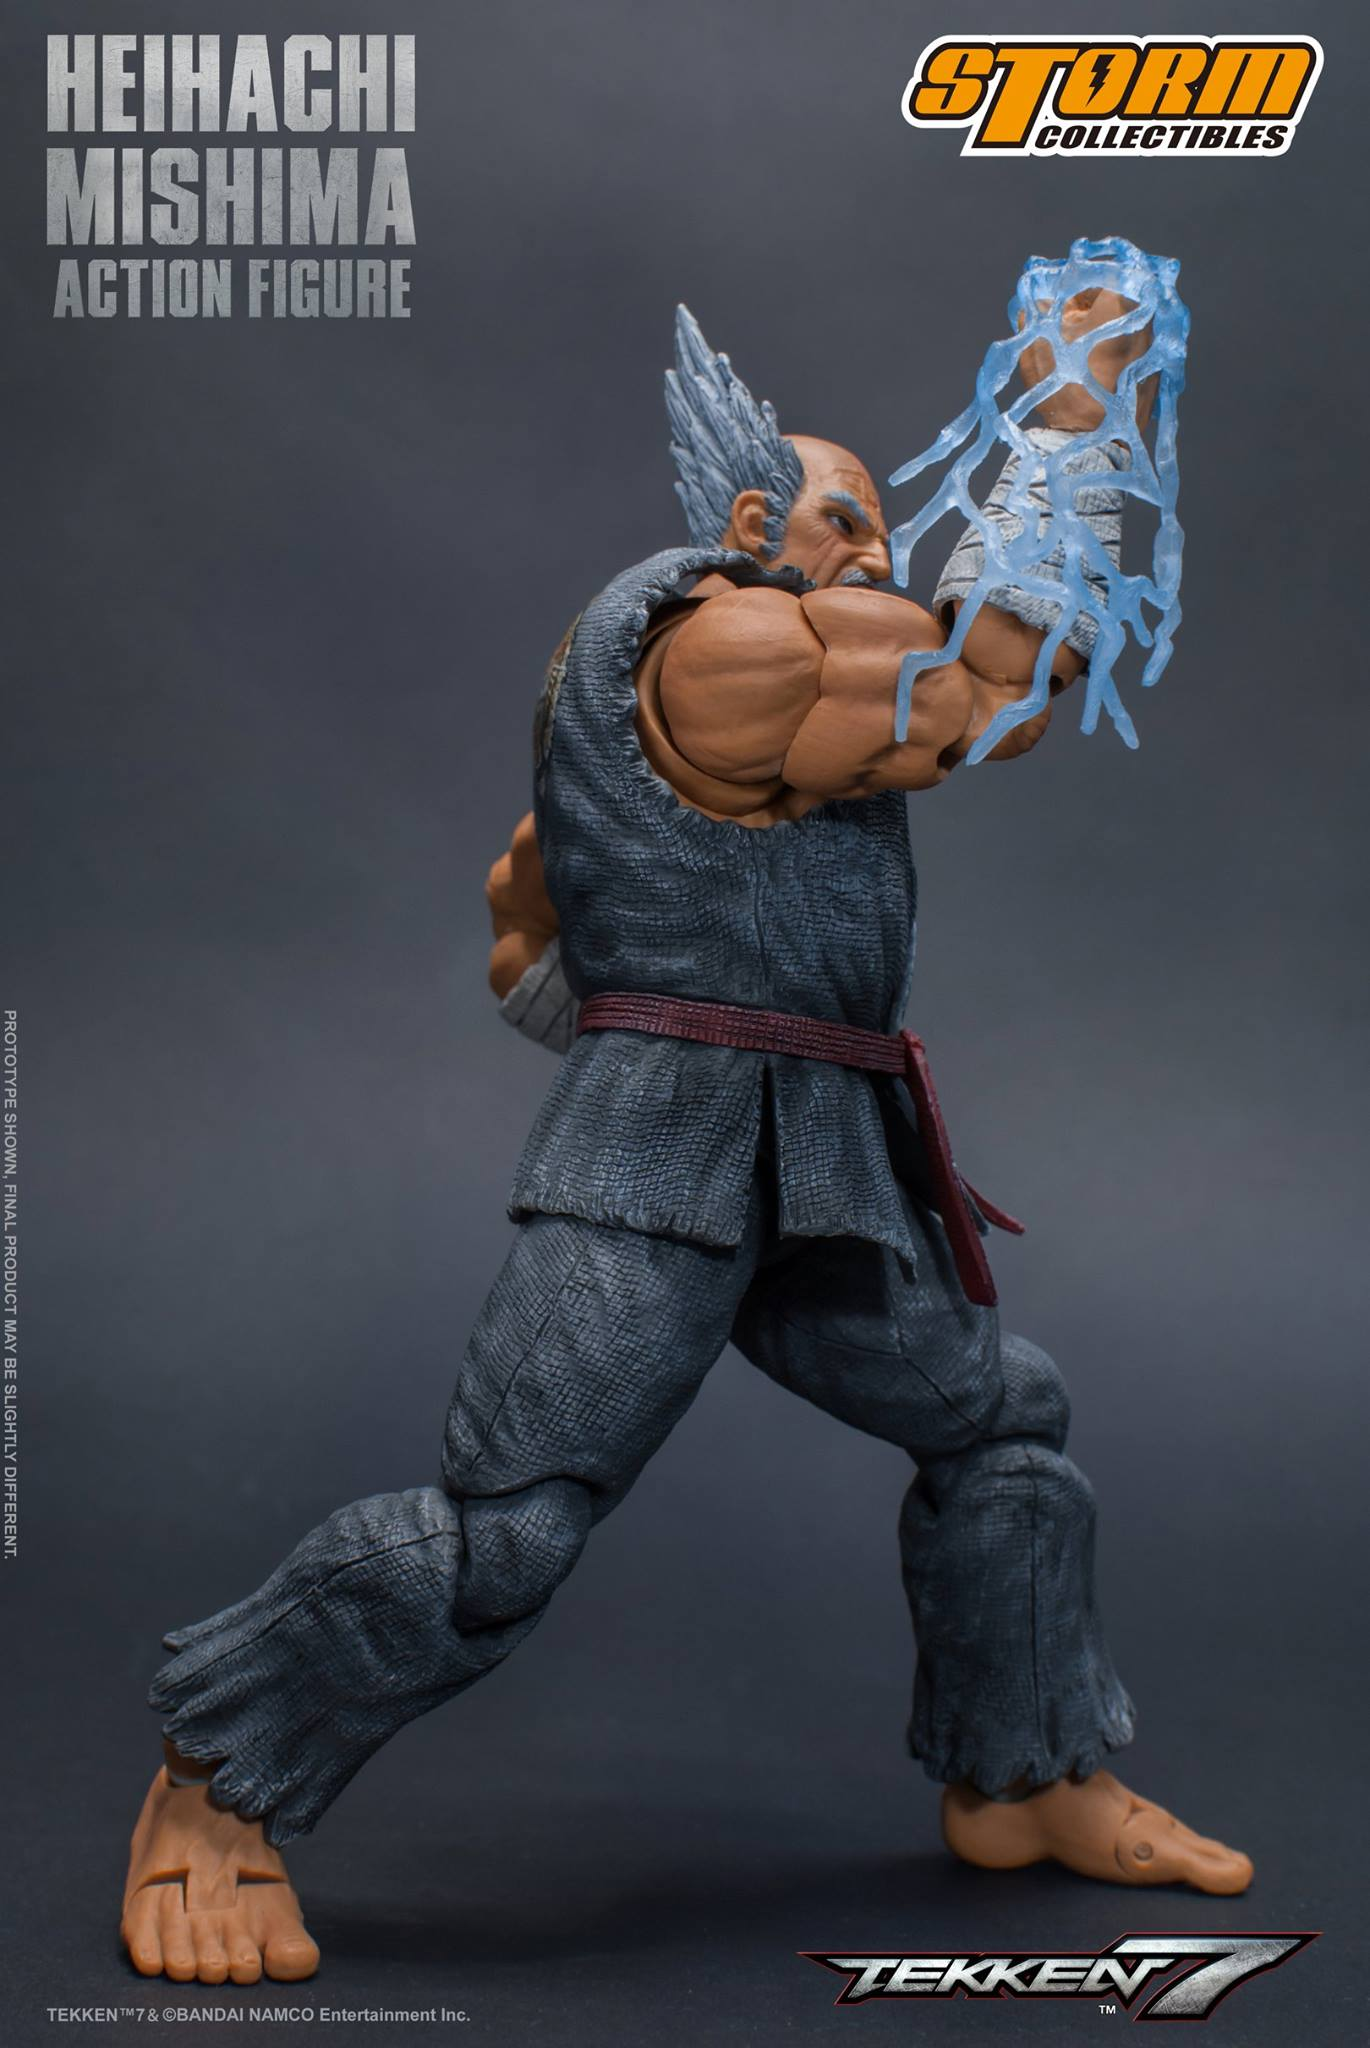 tekken 7 heihachi mishima - photo #13